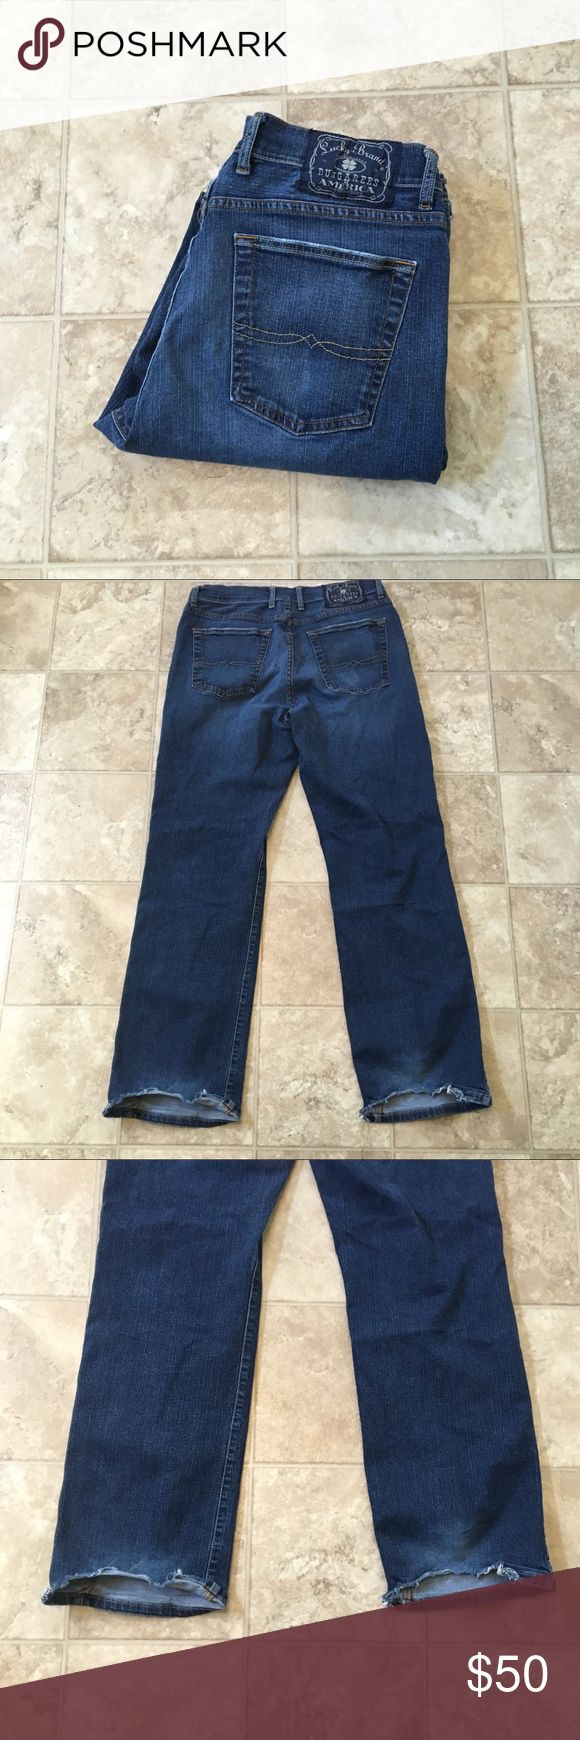 """LUCKY BRAND MENS BOOTCUT Jeans Size 34 Inseam 31 LUCKY BRAND MENS BOOTCUT Jeans Size 34 Inseam 31 Across the waist 17"""" W 34 Rise 12"""" SIGNS OF WEAR AT THE BOTTOM OF JEANS!  SAME DAY SHIPPING! SMOKE FREE ENVIRONMENT!   ALL OFFERS CONSIDERED Lucky Brand Jeans Bootcut"""